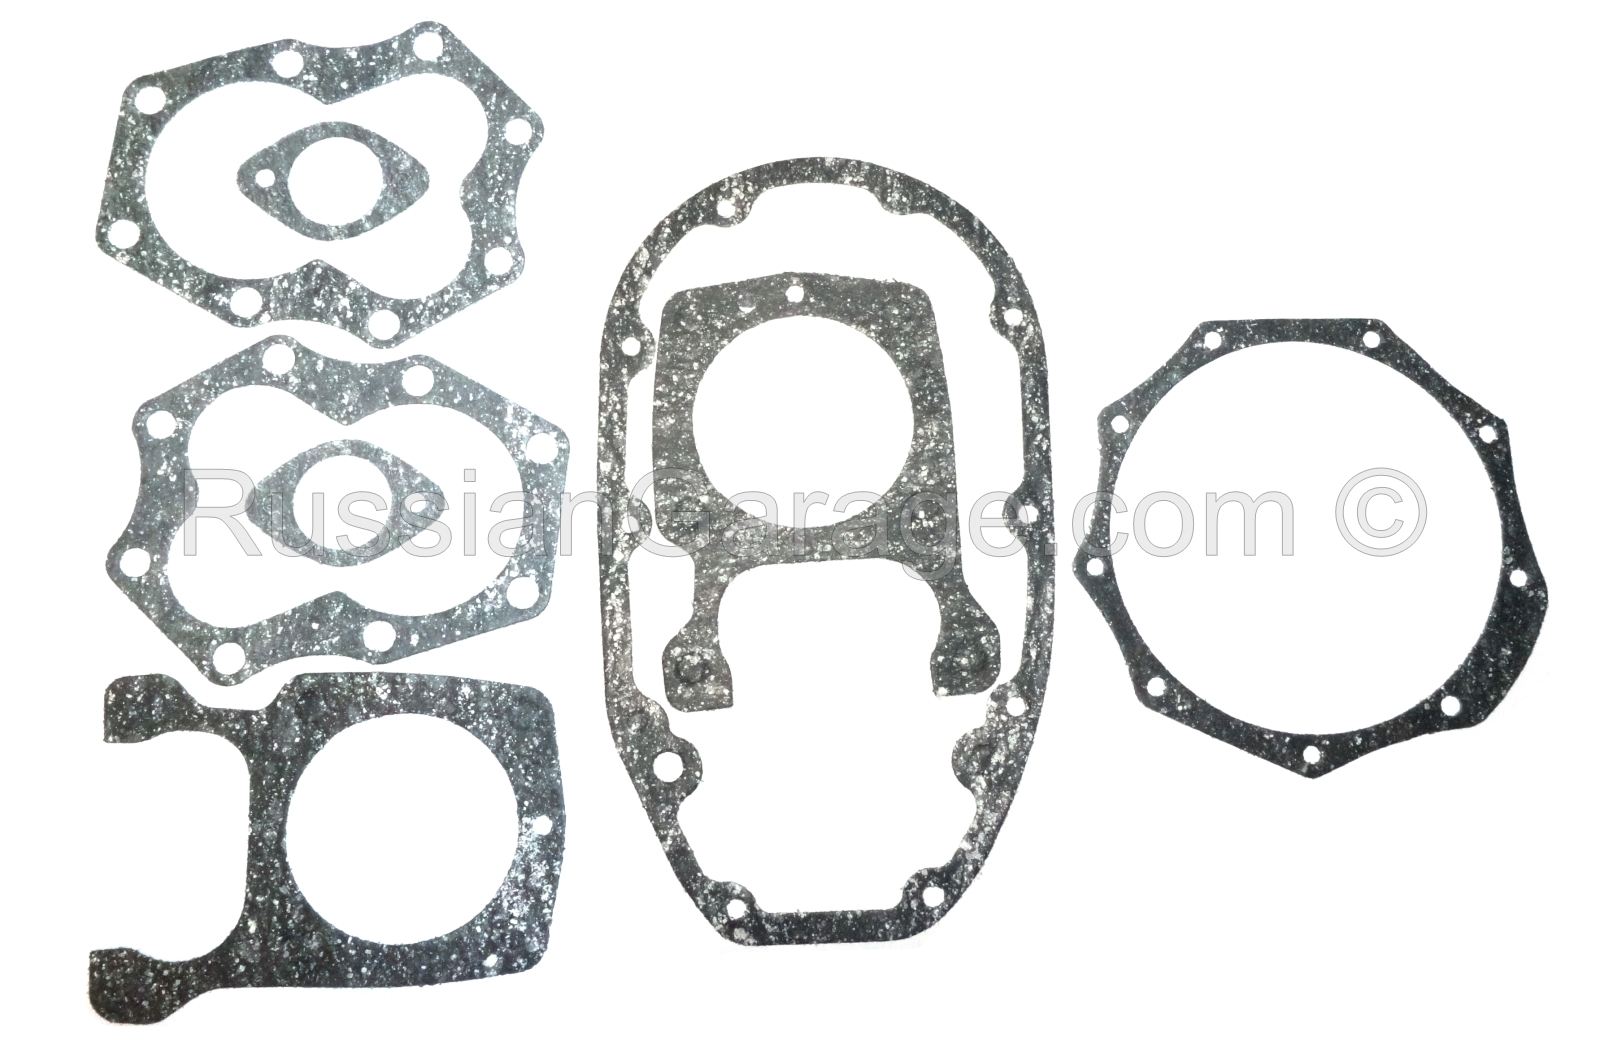 Kit of paronite gaskets for engine repair DNEPR K-750